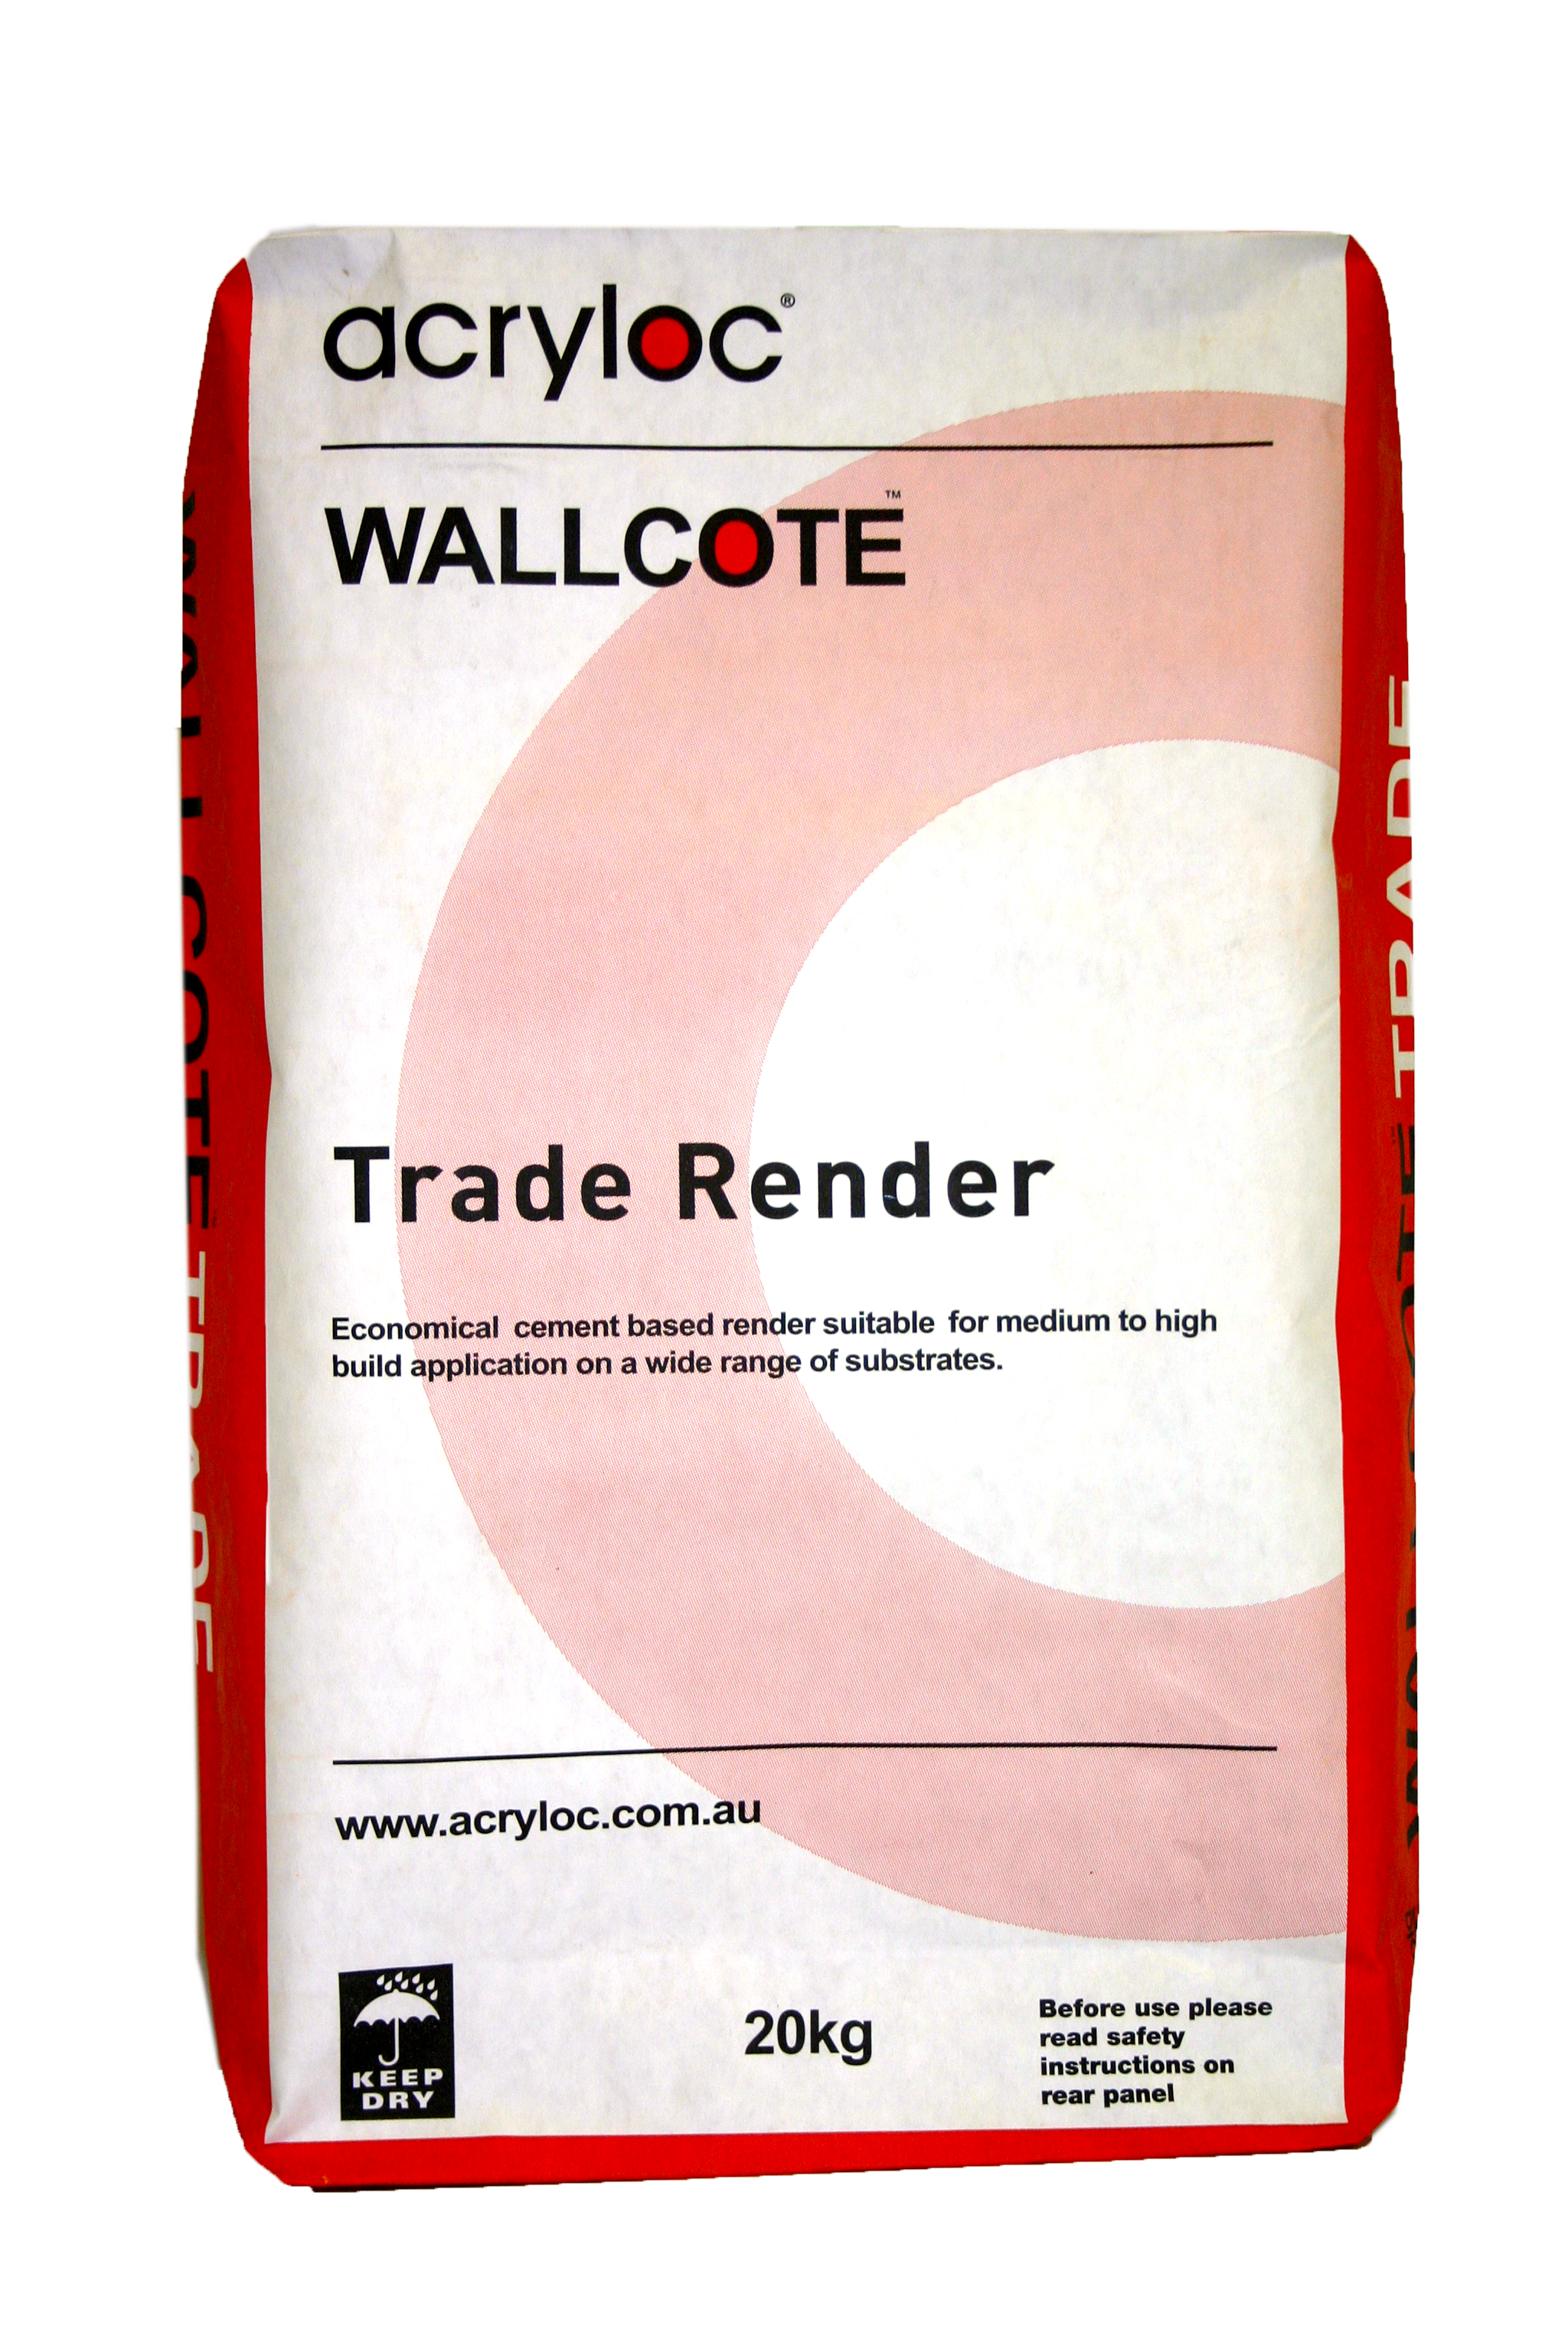 AWTR Acryloc Wallcote Trade Render4